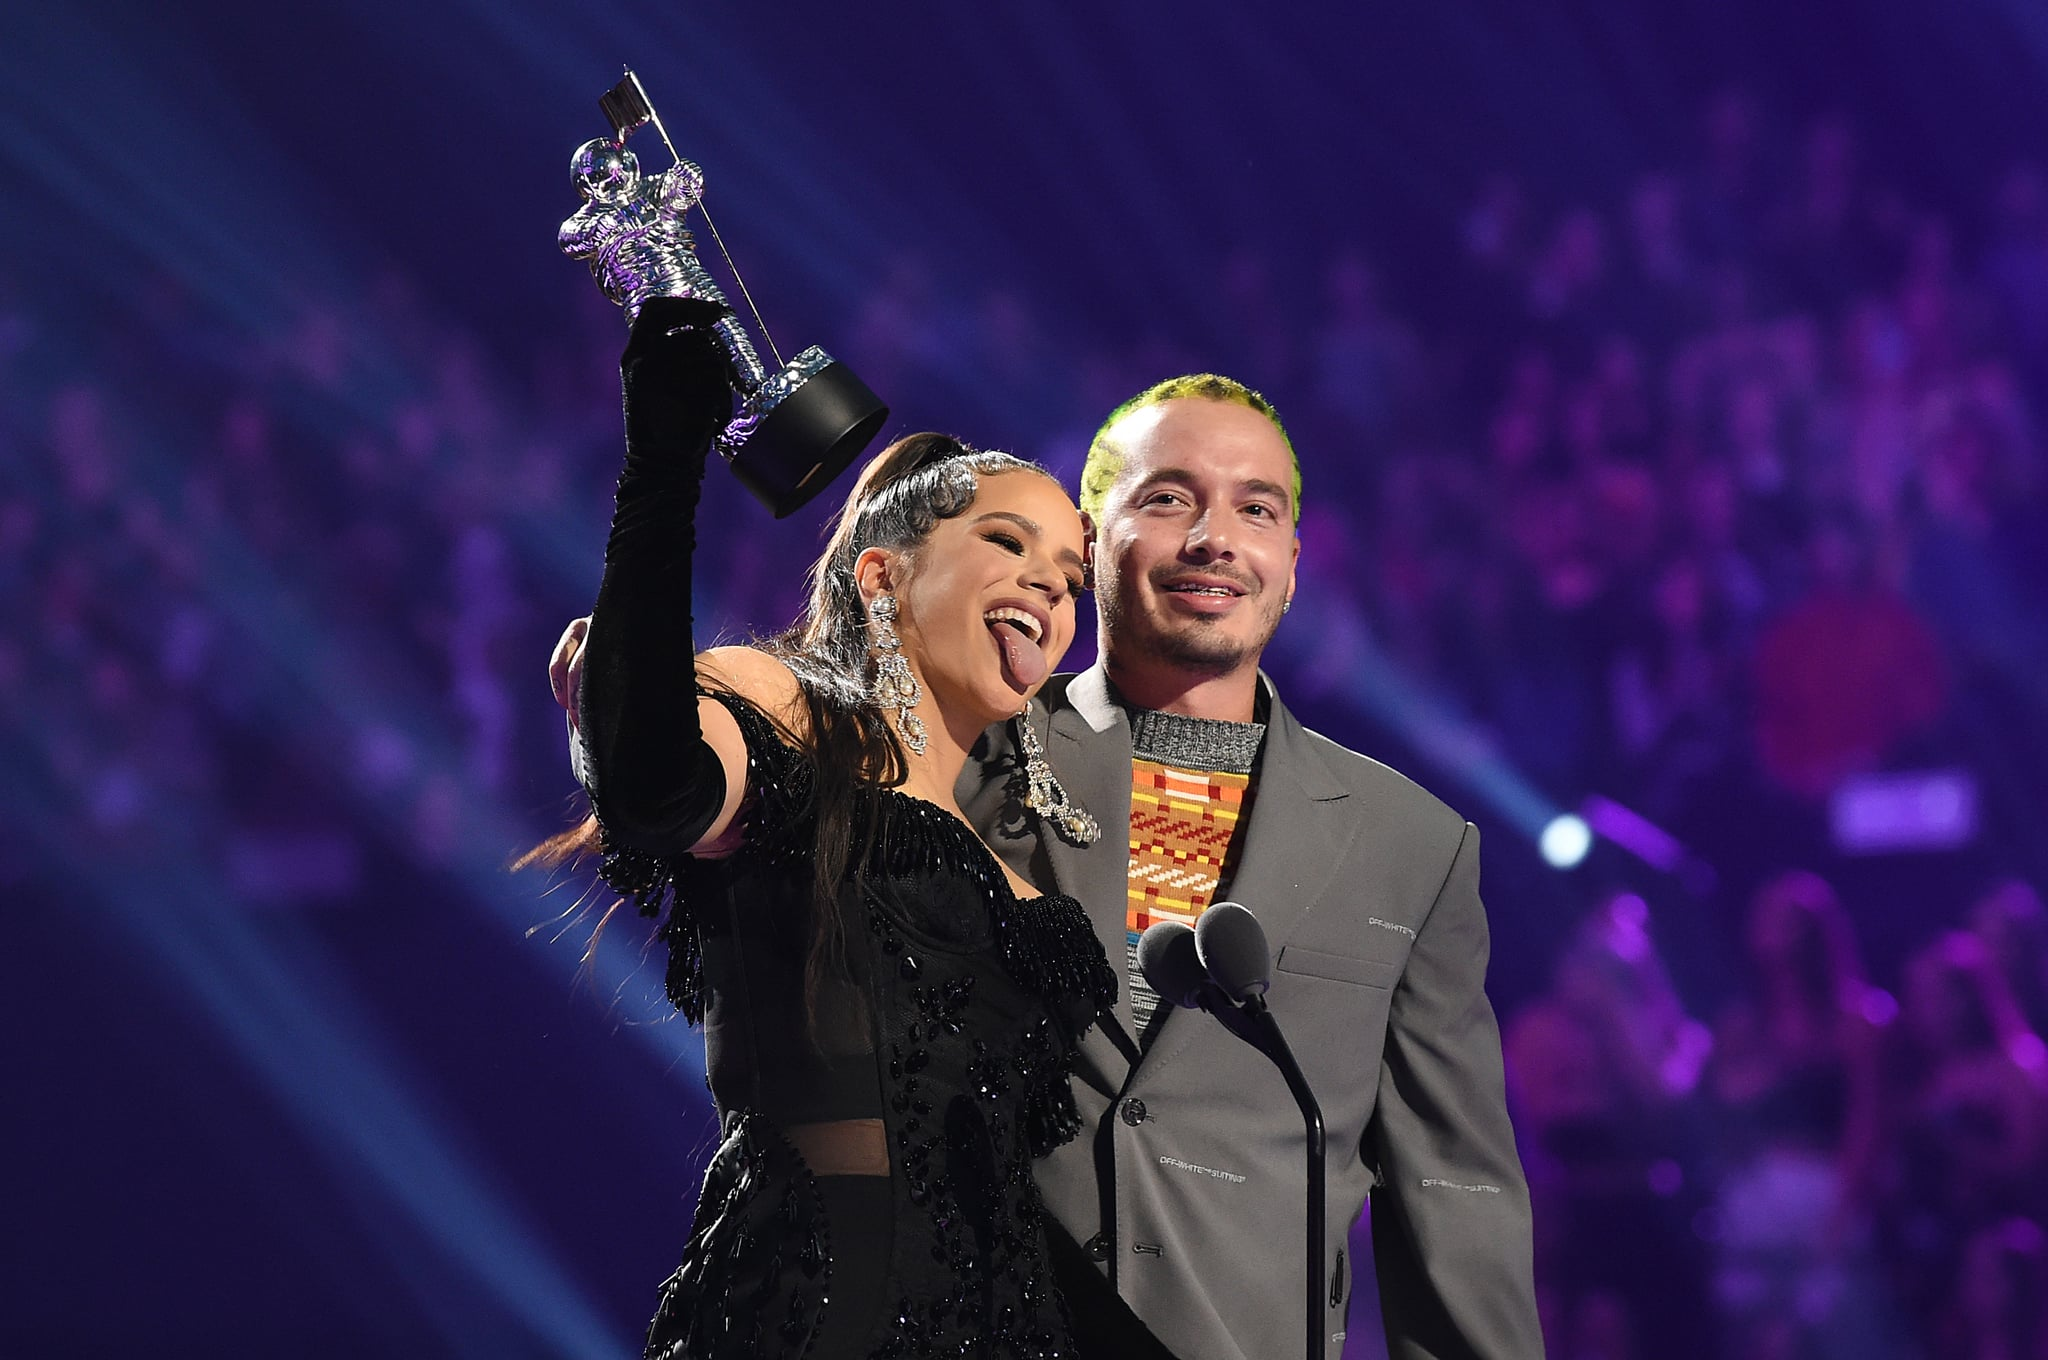 NEWARK, NEW JERSEY - AUGUST 26: ROSALÍA and J Balvin speak onstage during the 2019 MTV Video Music Awards at Prudential Centre on August 26, 2019 in Newark, New Jersey. (Photo by Dimitrios Kambouris/VMN19/Getty Images for MTV)